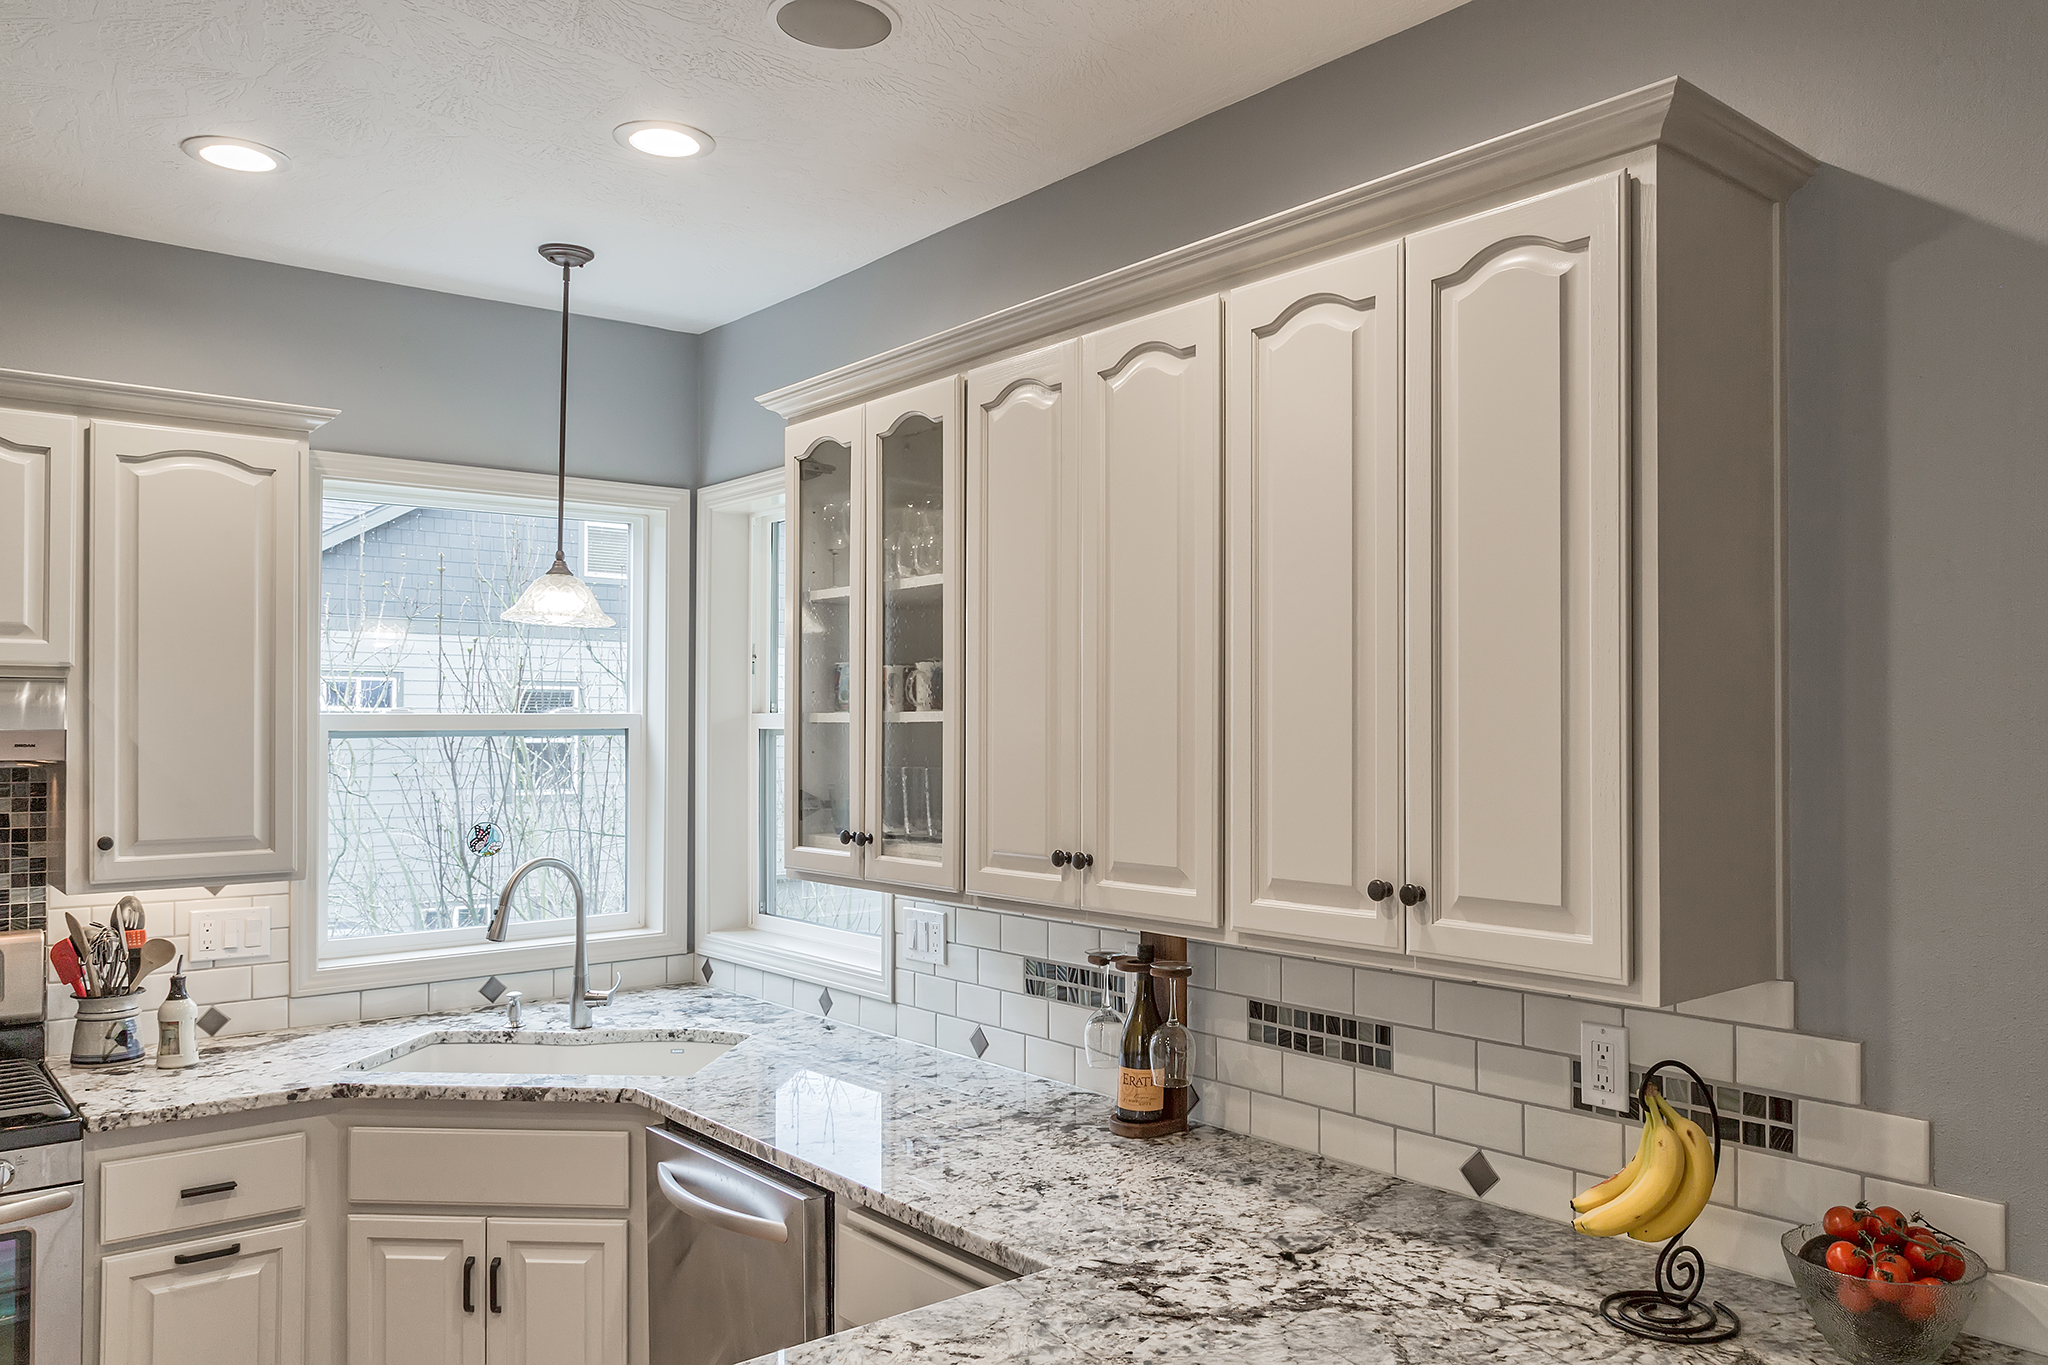 kitchen pictures for walls cabnits beautiful country home remodel - wright interiors